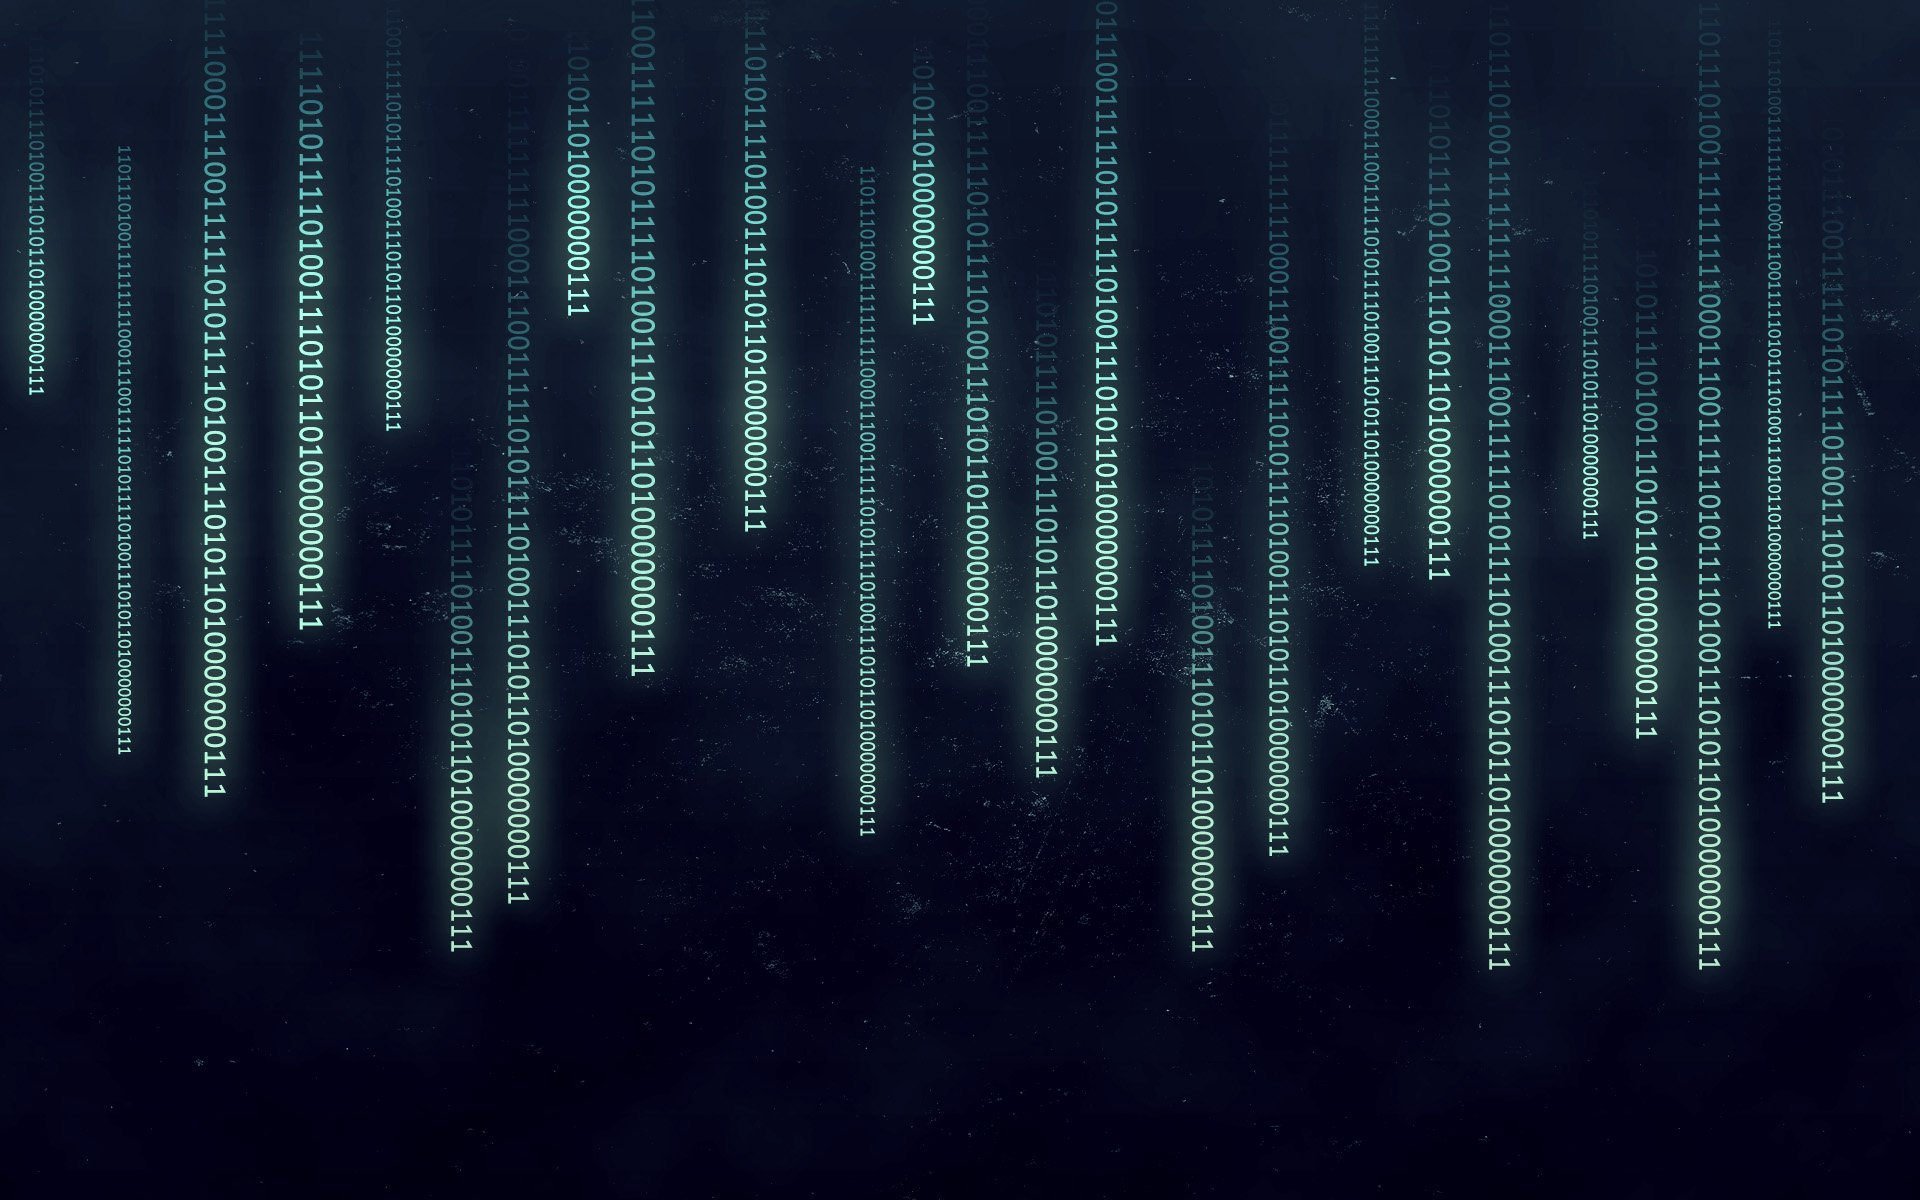 Wallpaper Computer Science